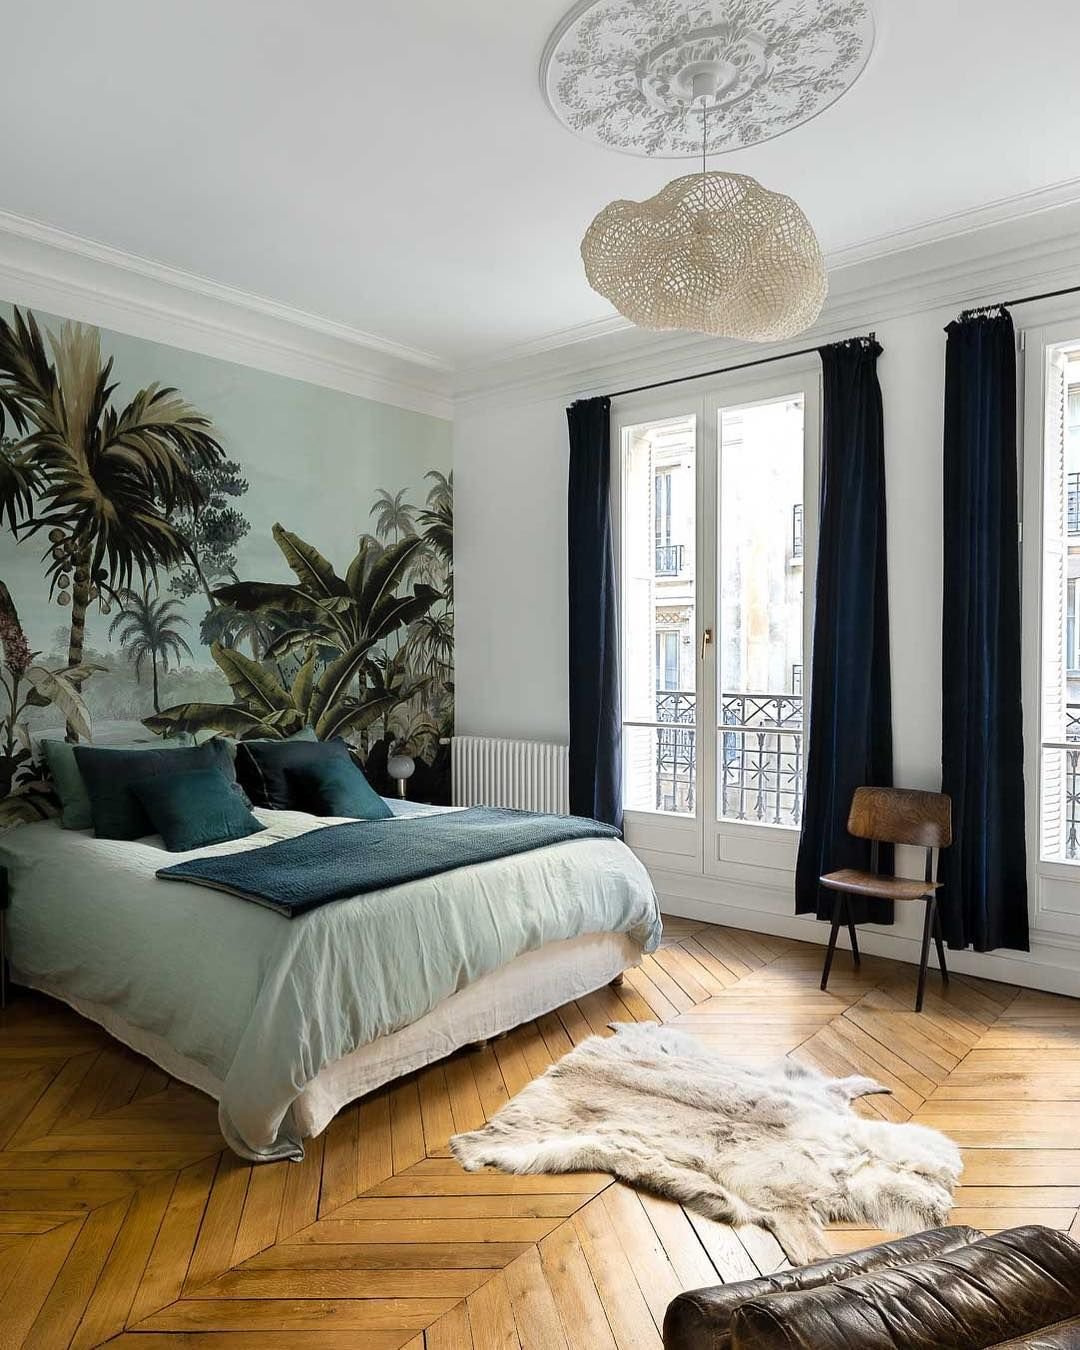 Parisian bedroom with Jungle wall mural via Charlotte Fequet